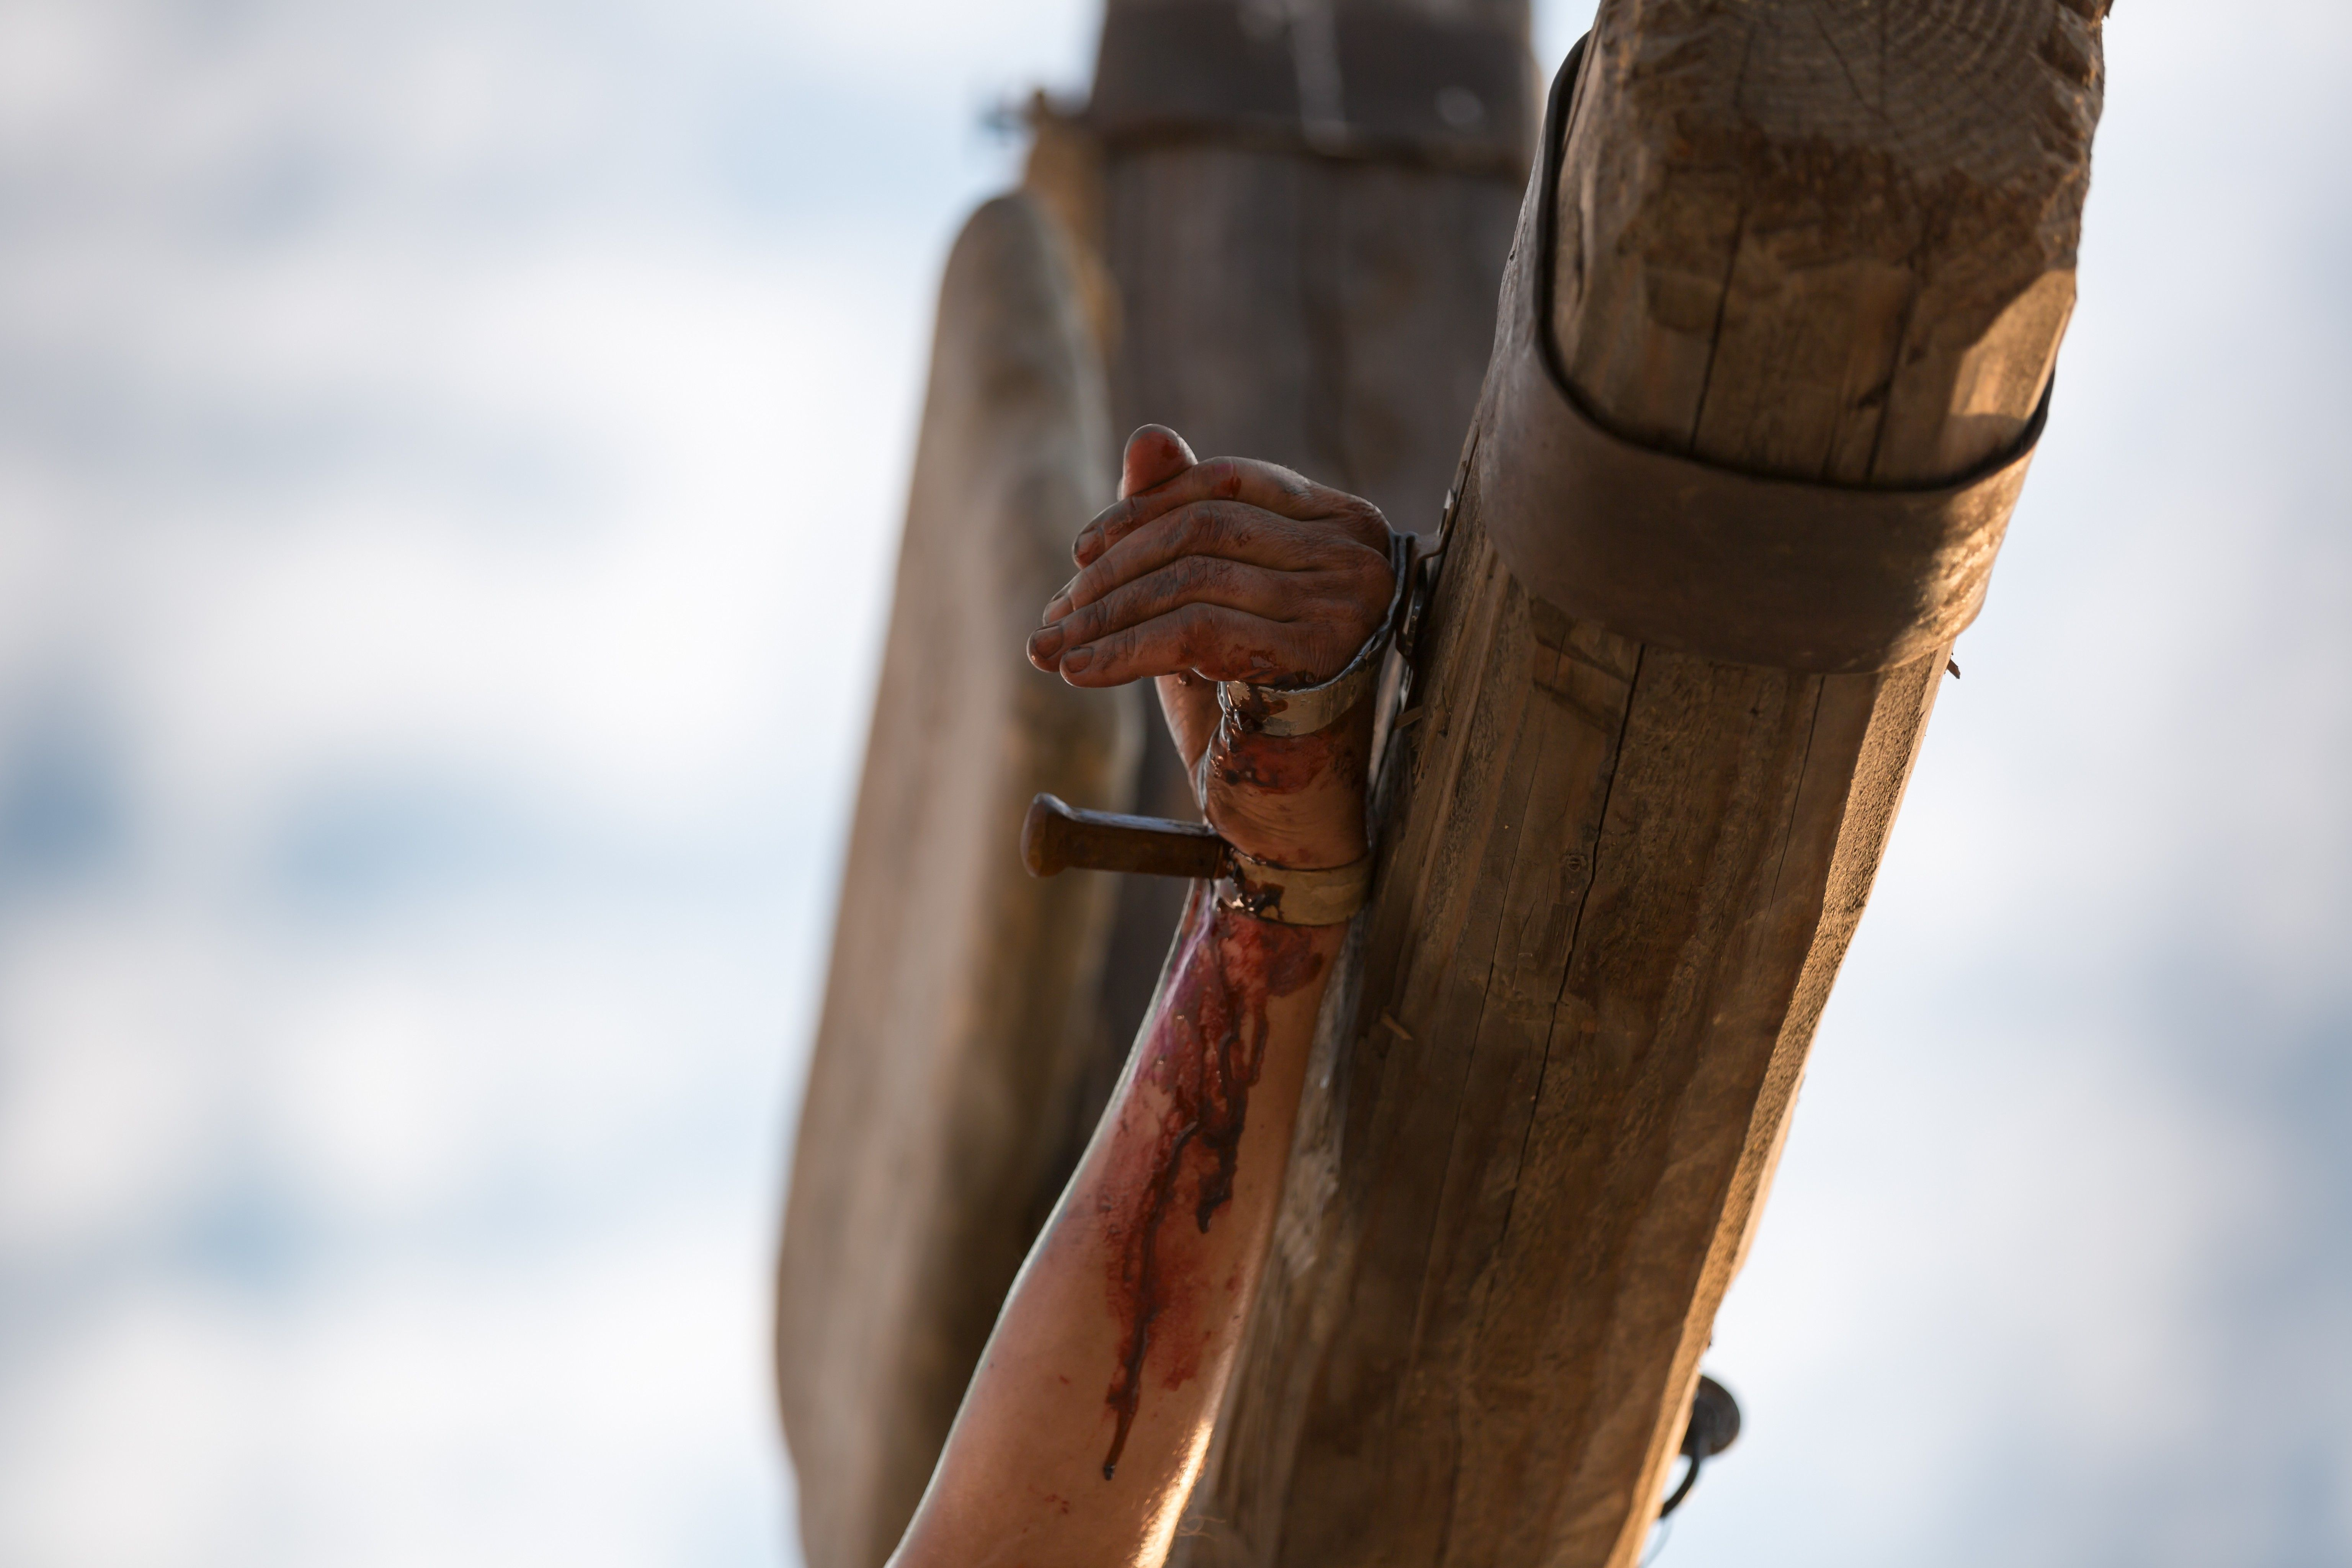 Christ's arm on the cross, with nails through His wrist and hand.